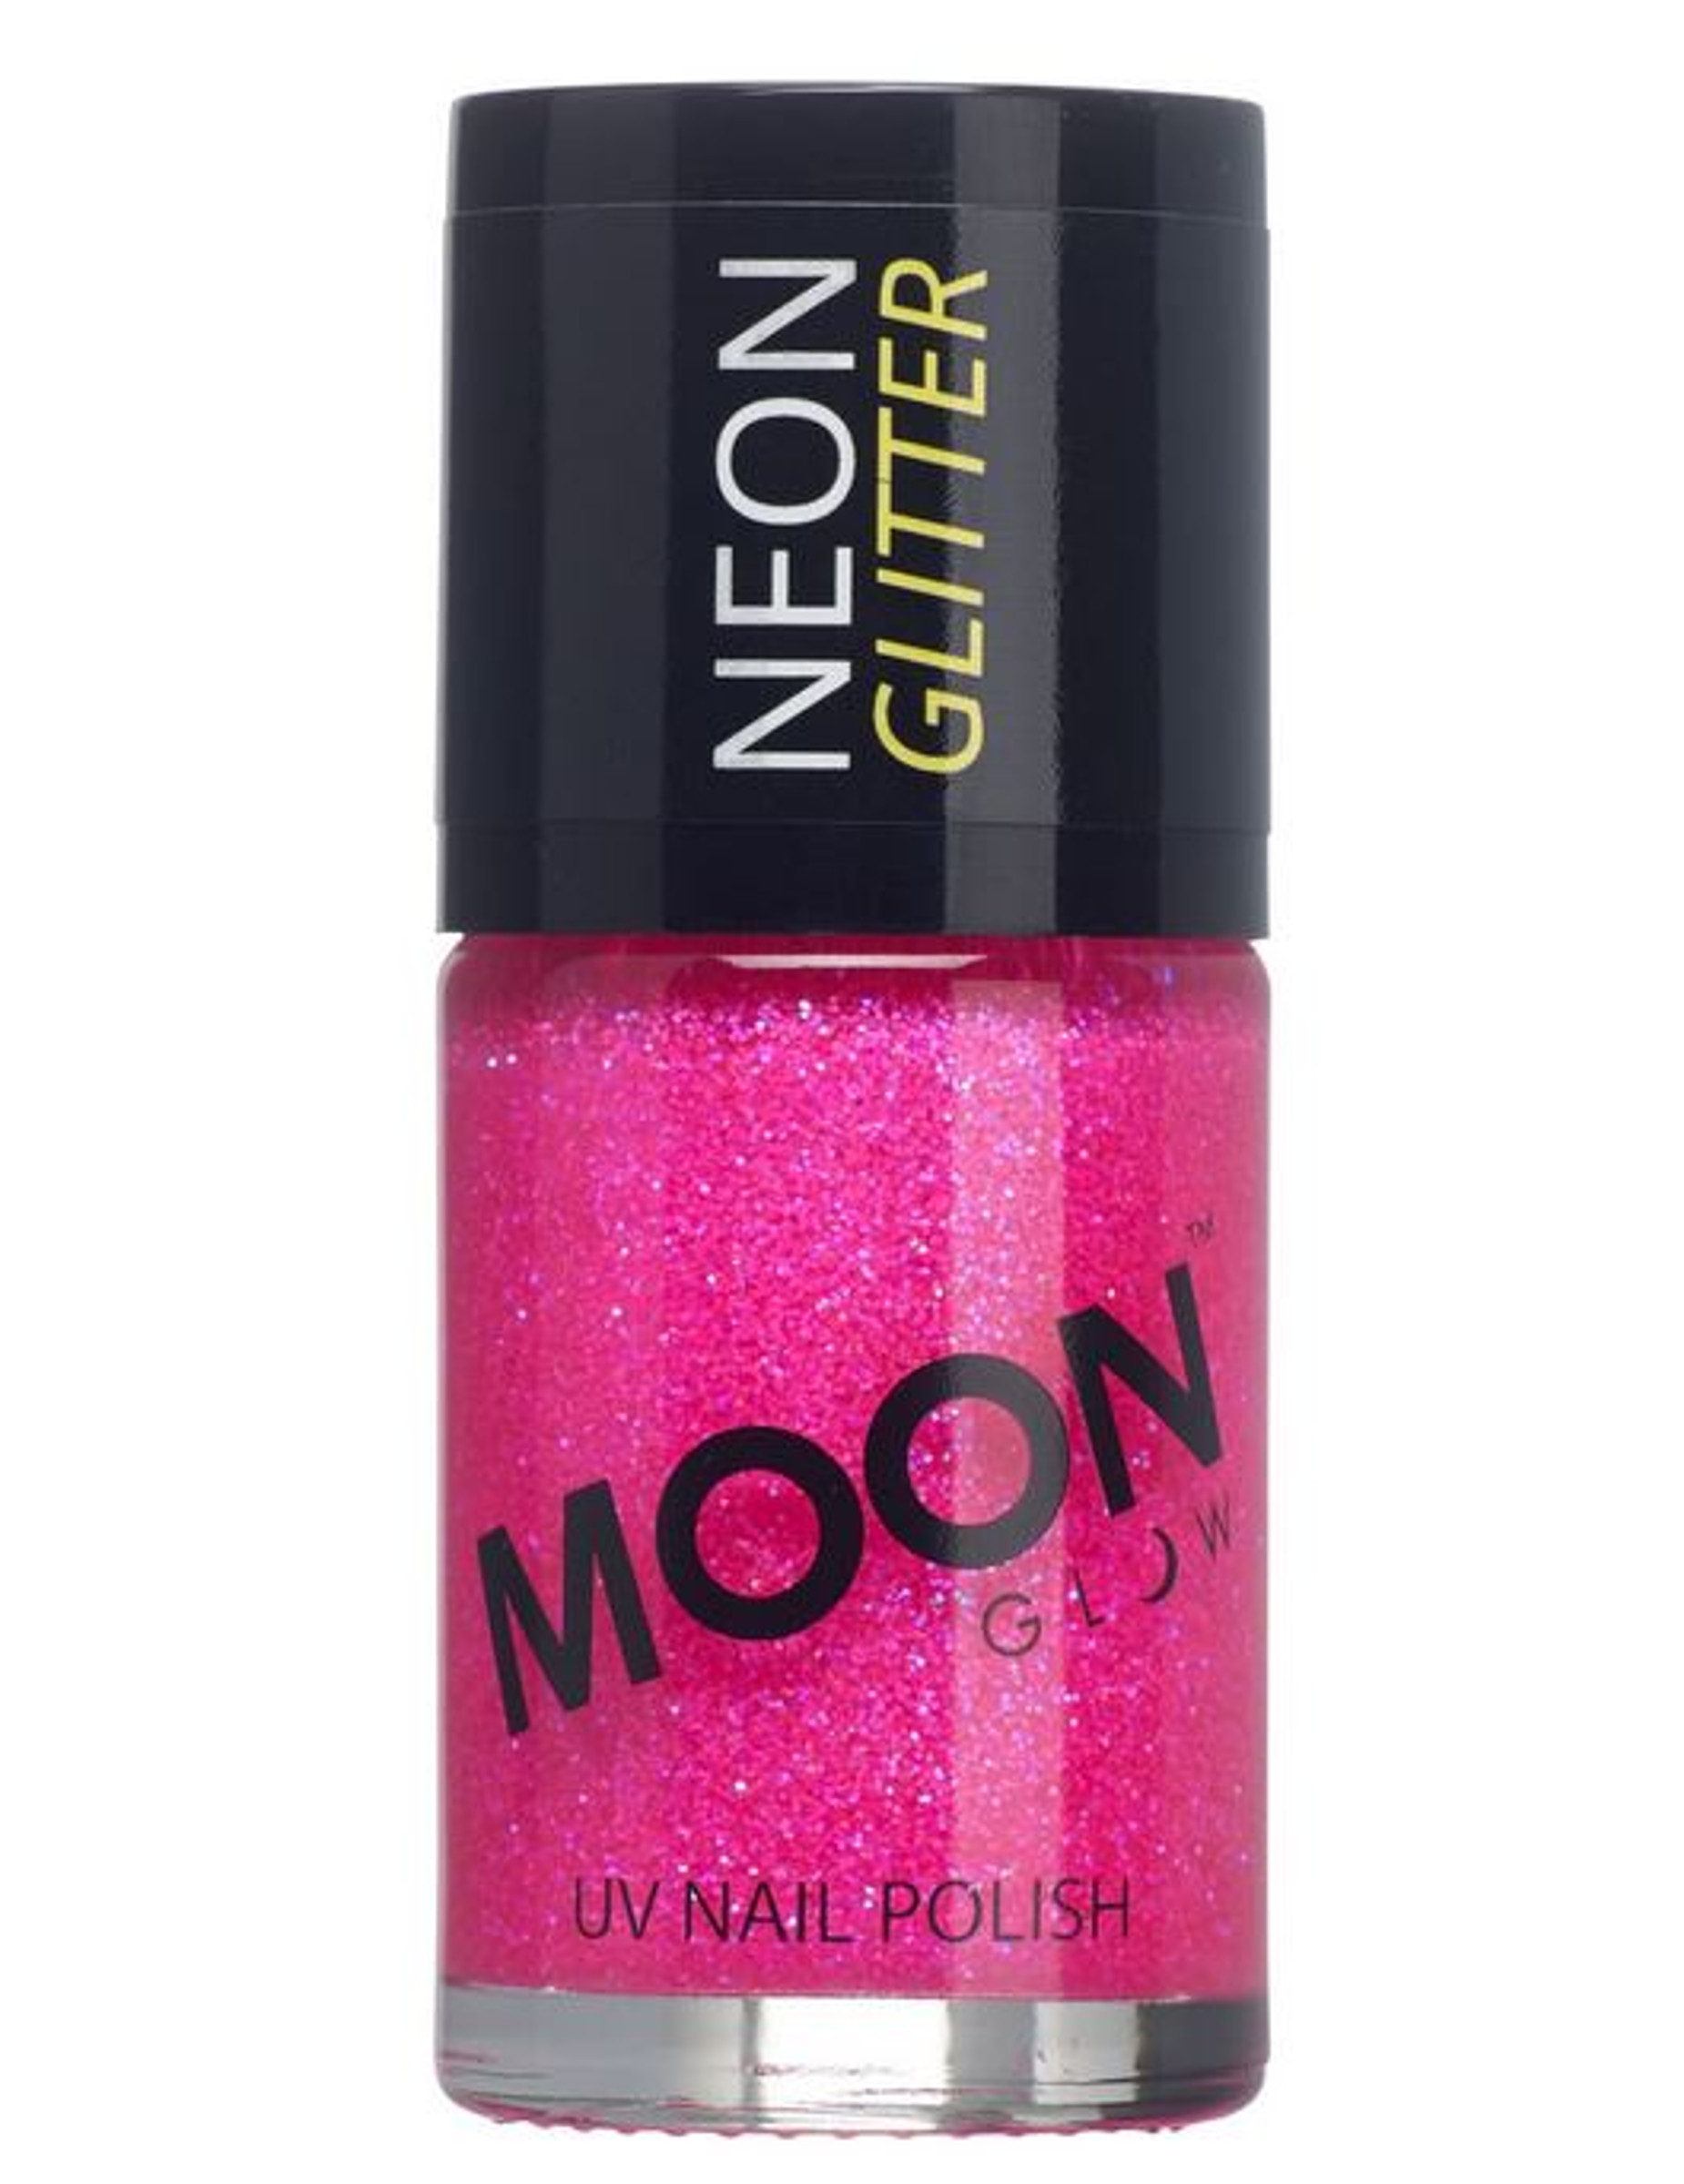 uv nagellack neon glitzer moonglow pink 15ml g nstige. Black Bedroom Furniture Sets. Home Design Ideas